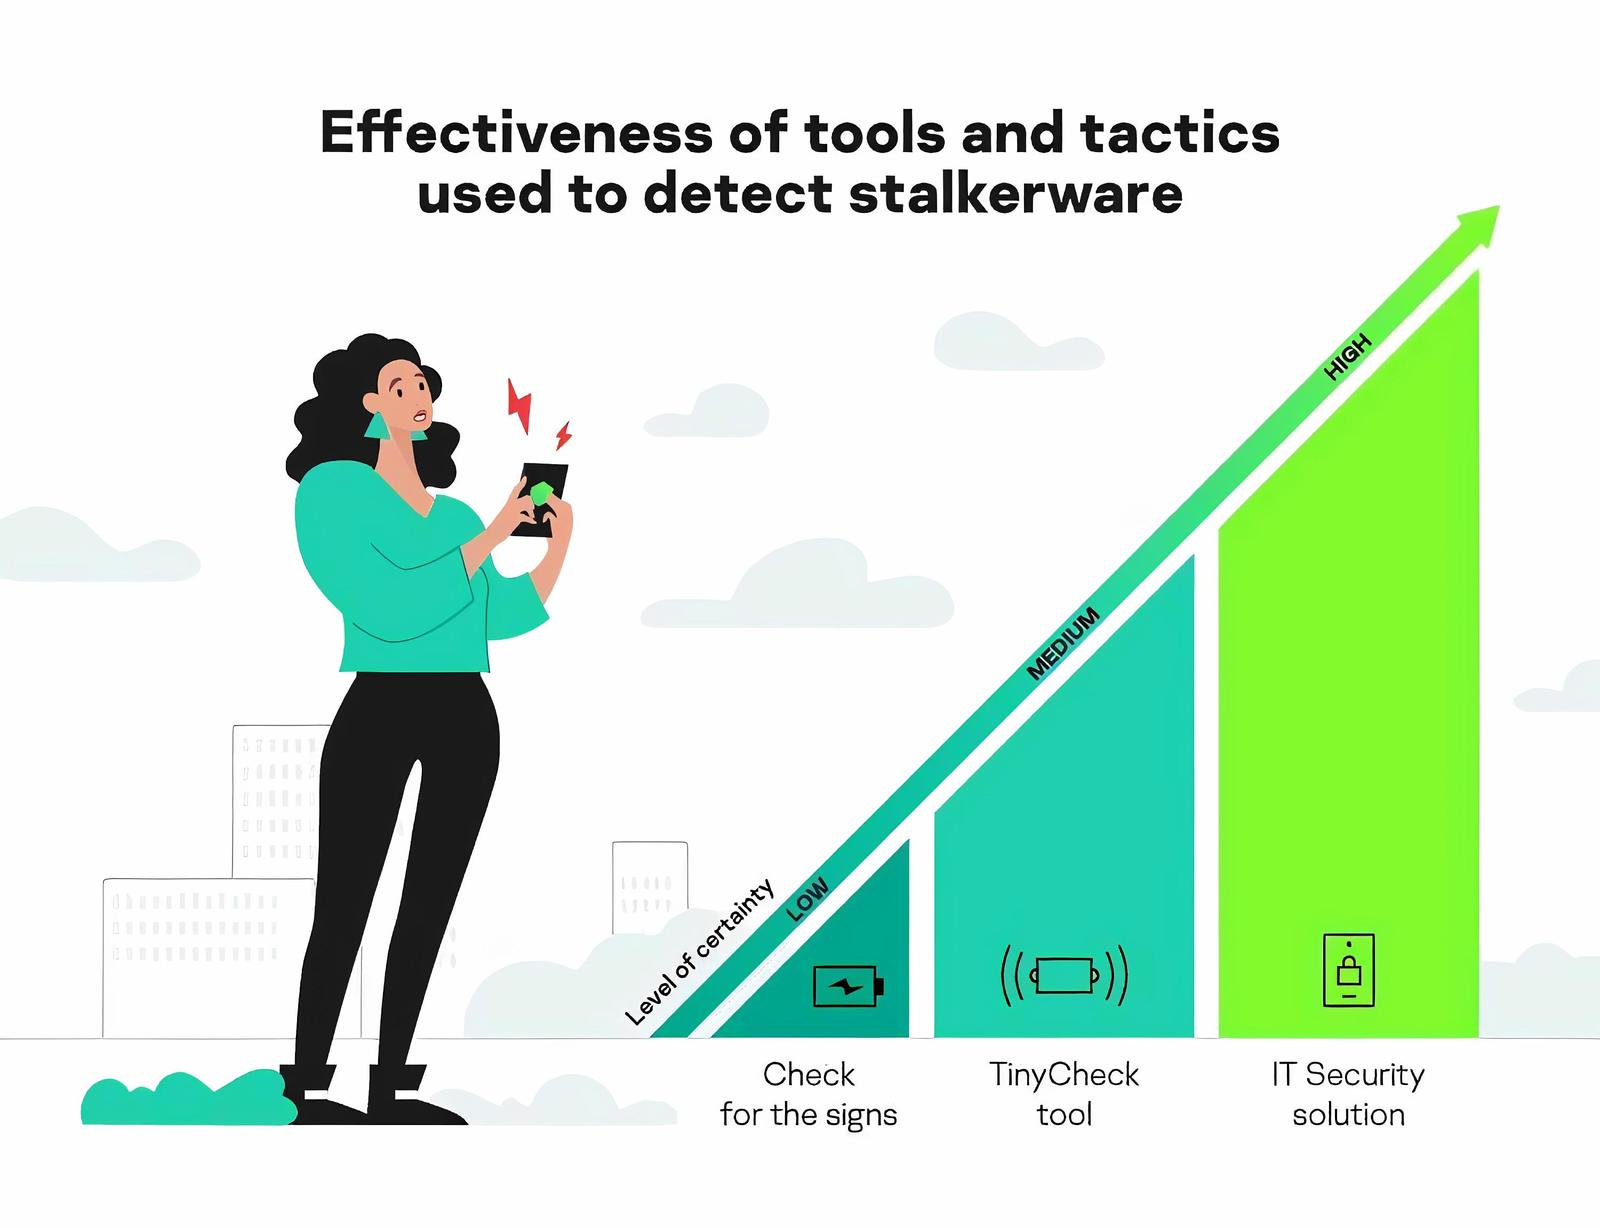 What tools and techniques can be used to detect stalkerware? And how effective are they?